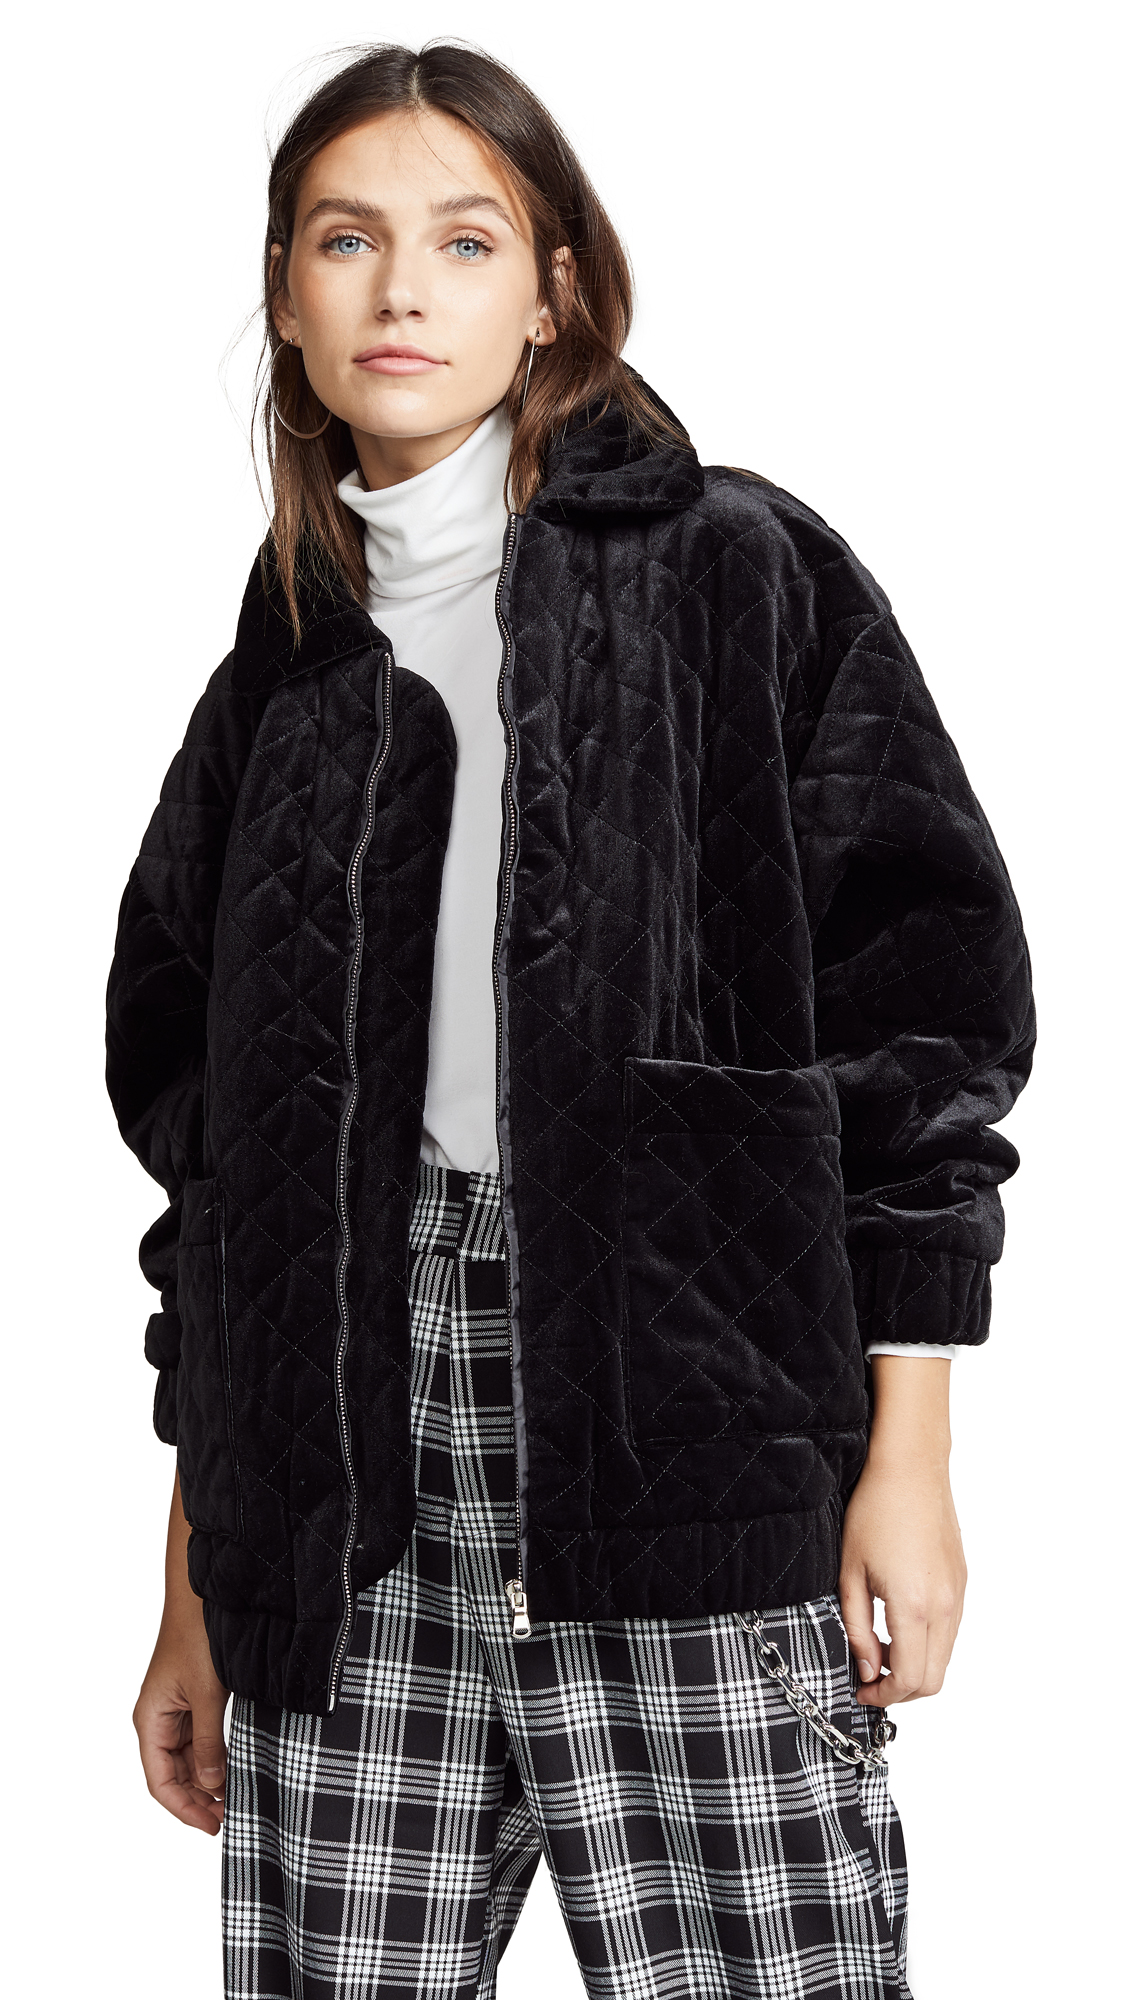 I.AM. GIA Contraband Jacket In Quilted Black